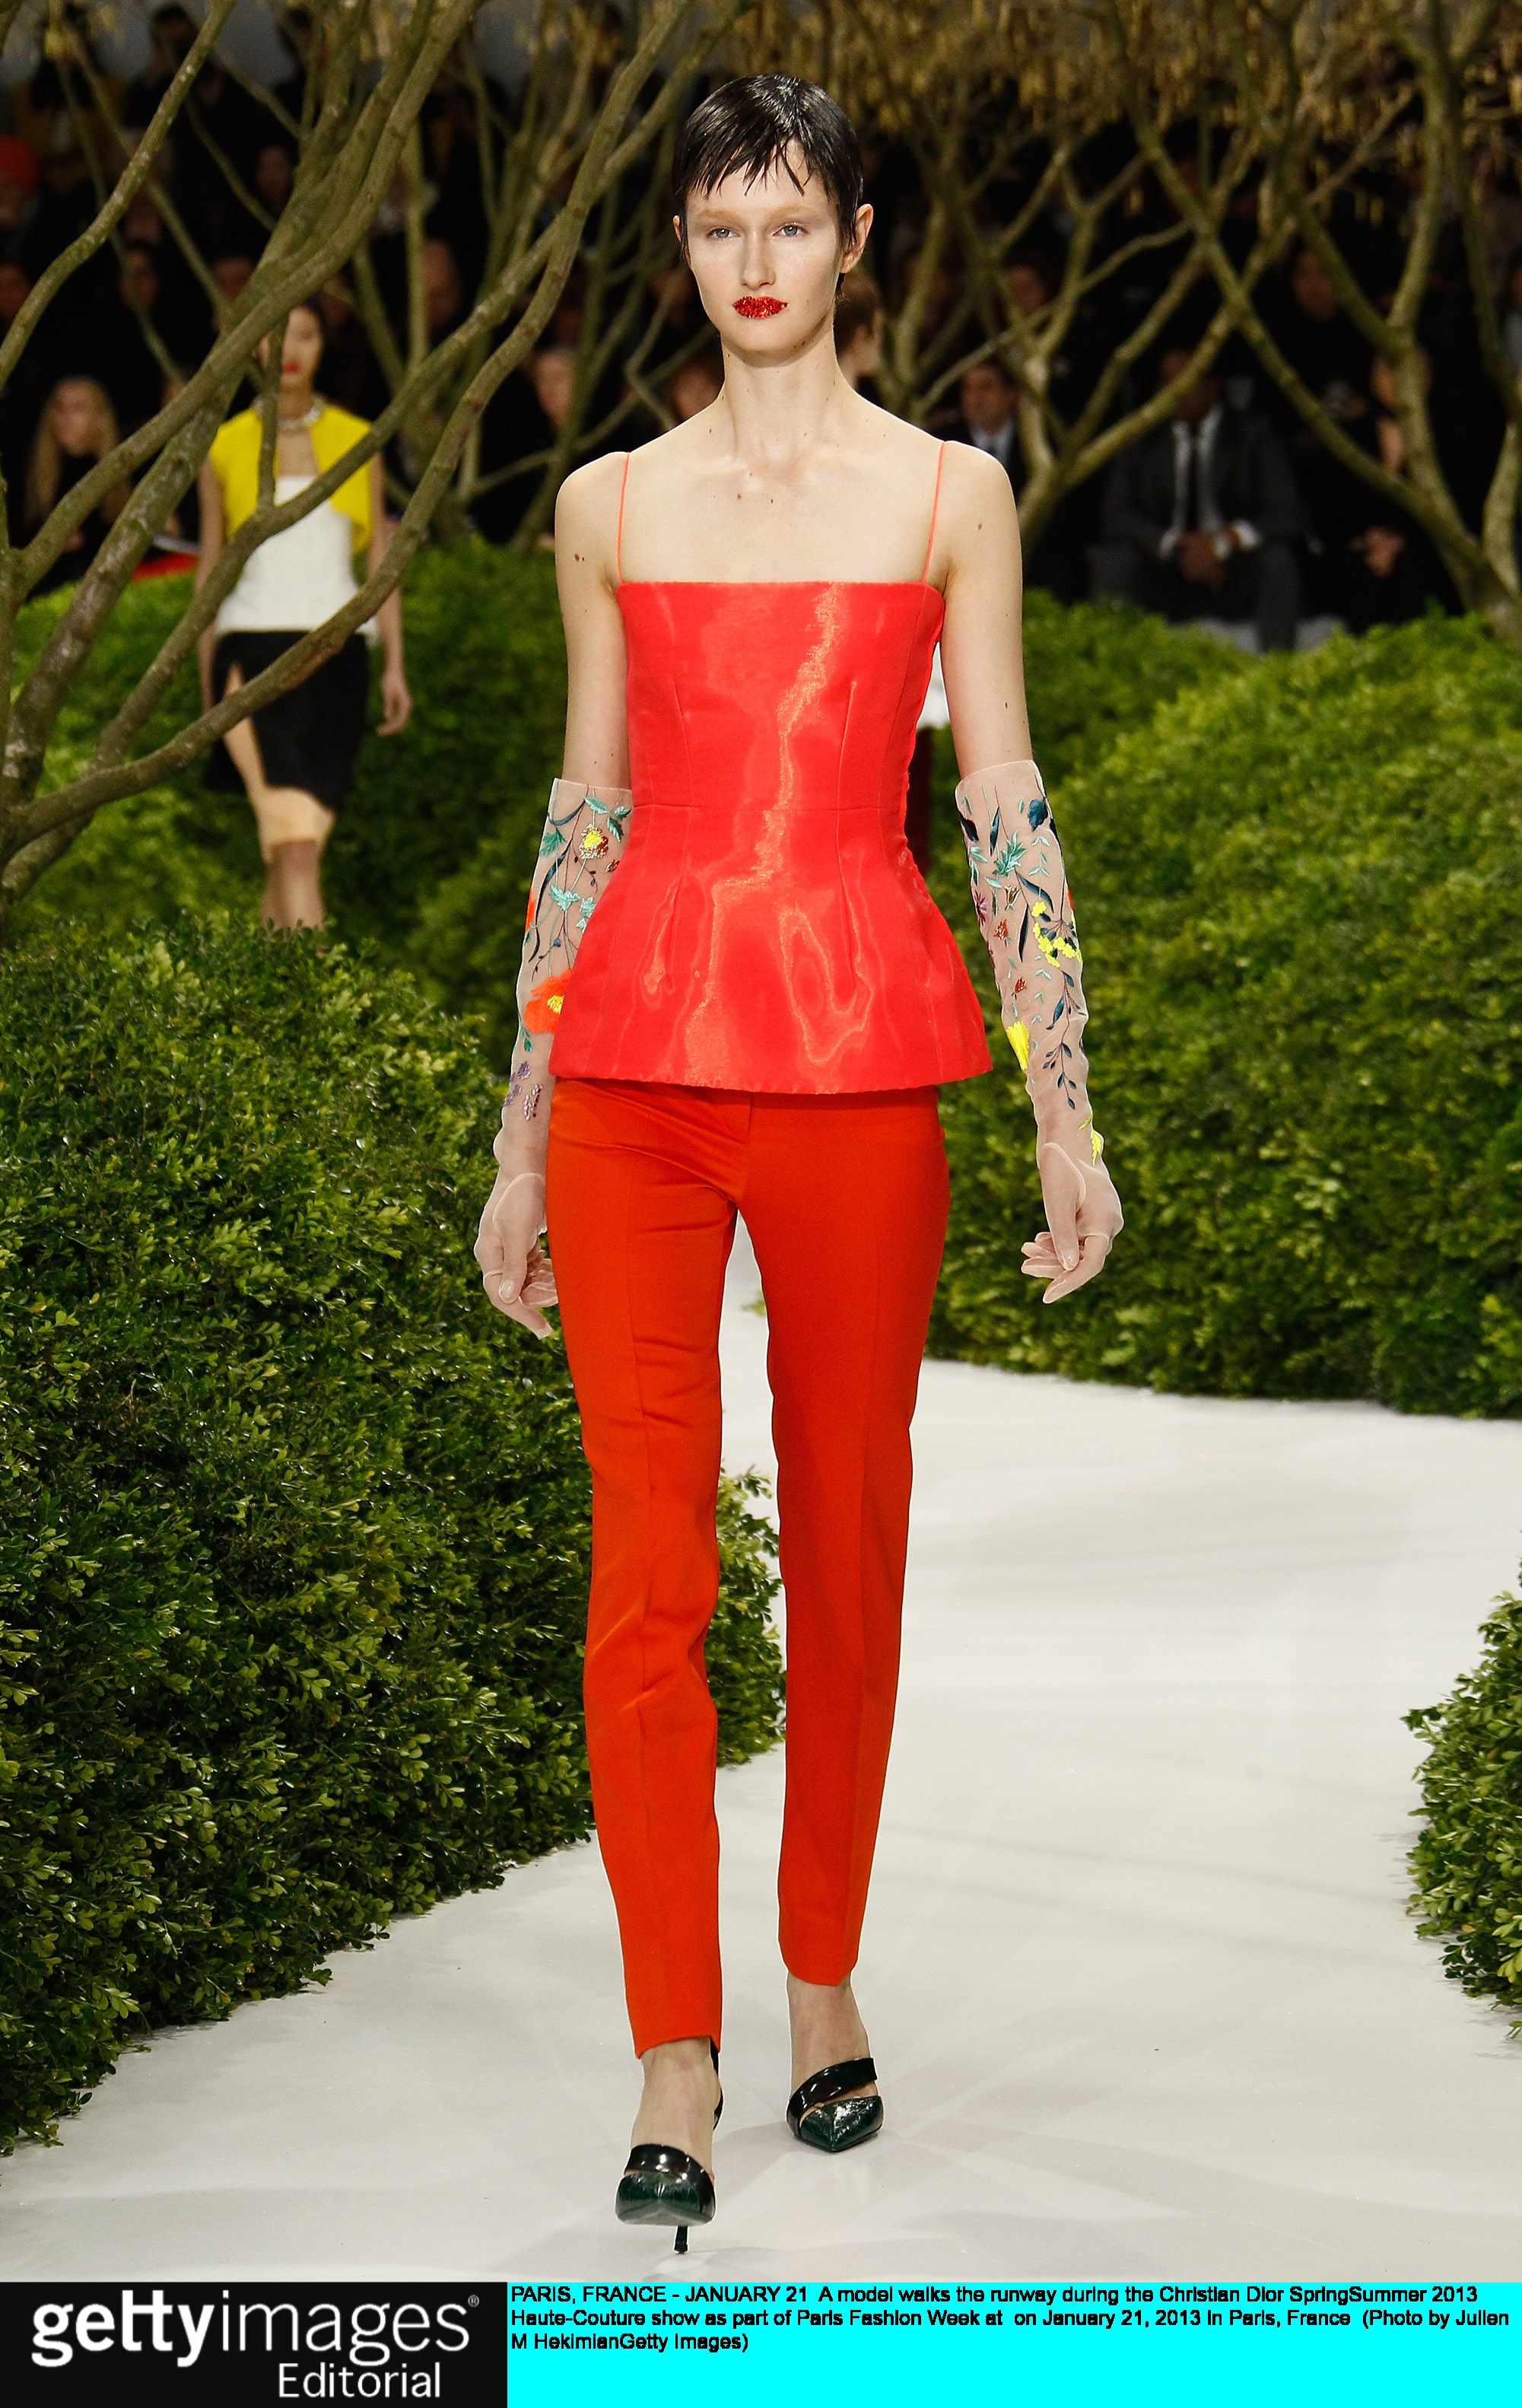 baad2cb44e A model walks the runway during the Christian Dior Spring/Summer 2013  Haute-Couture